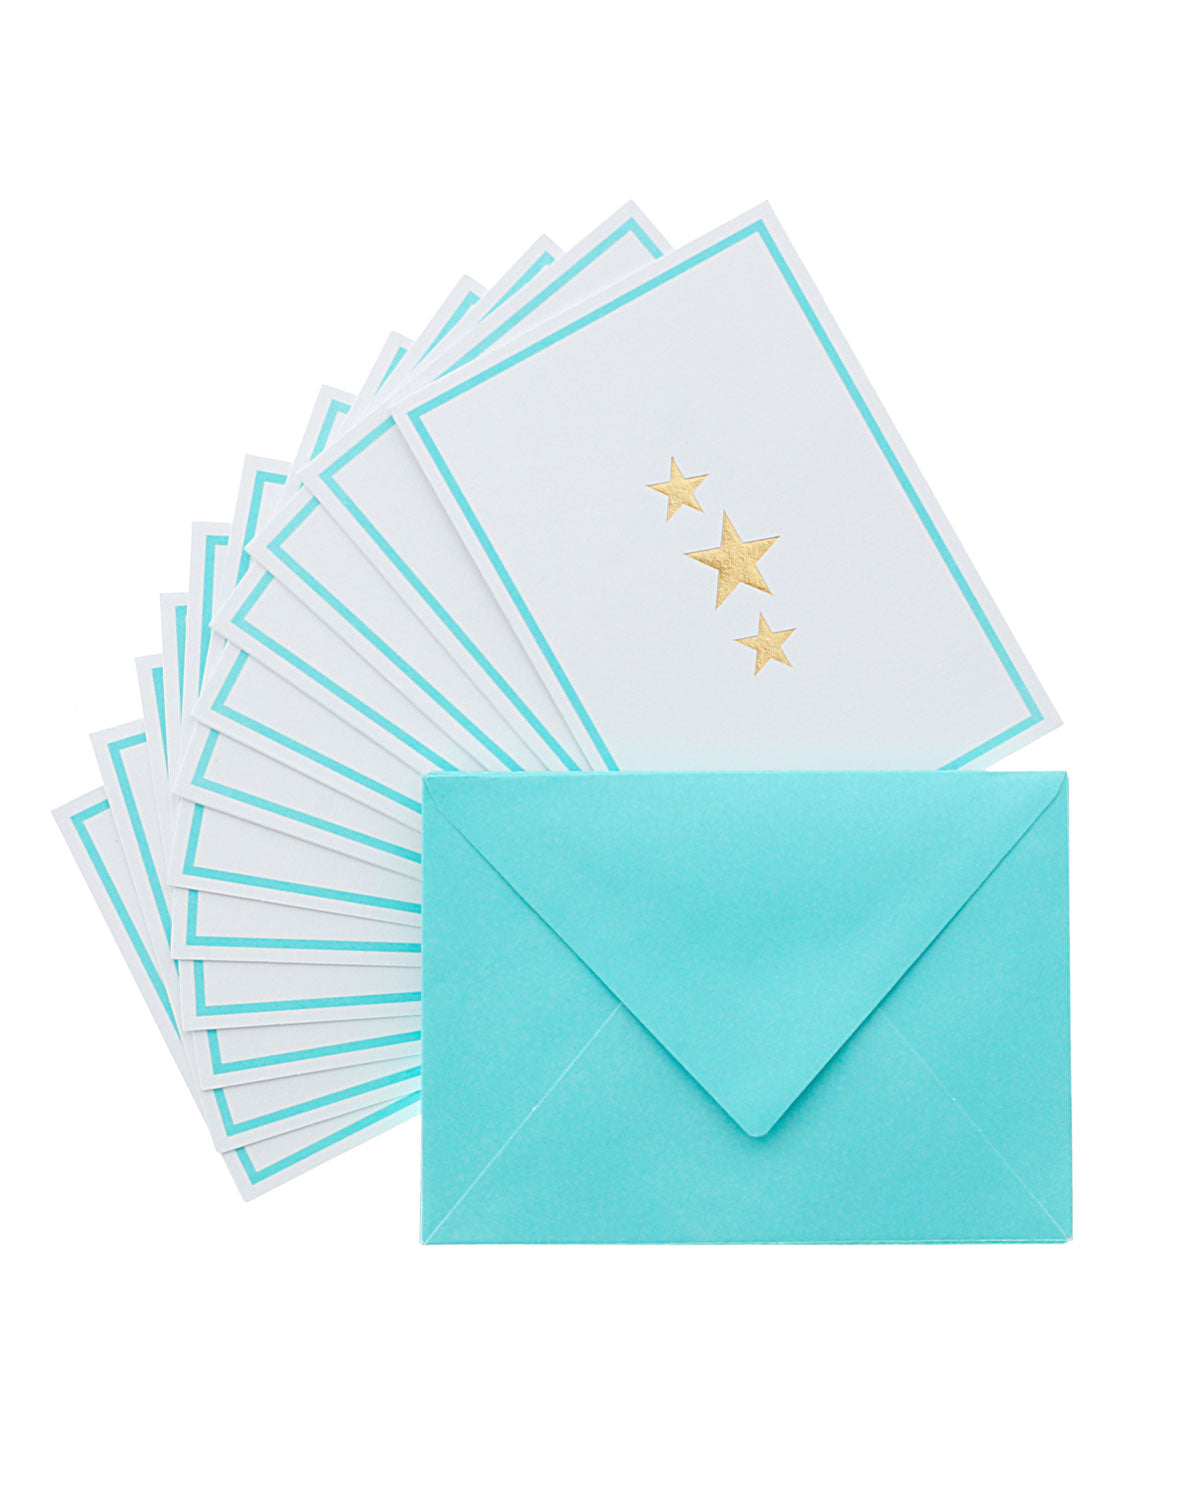 Studio Gold Stars 12 Cards & Envelopes